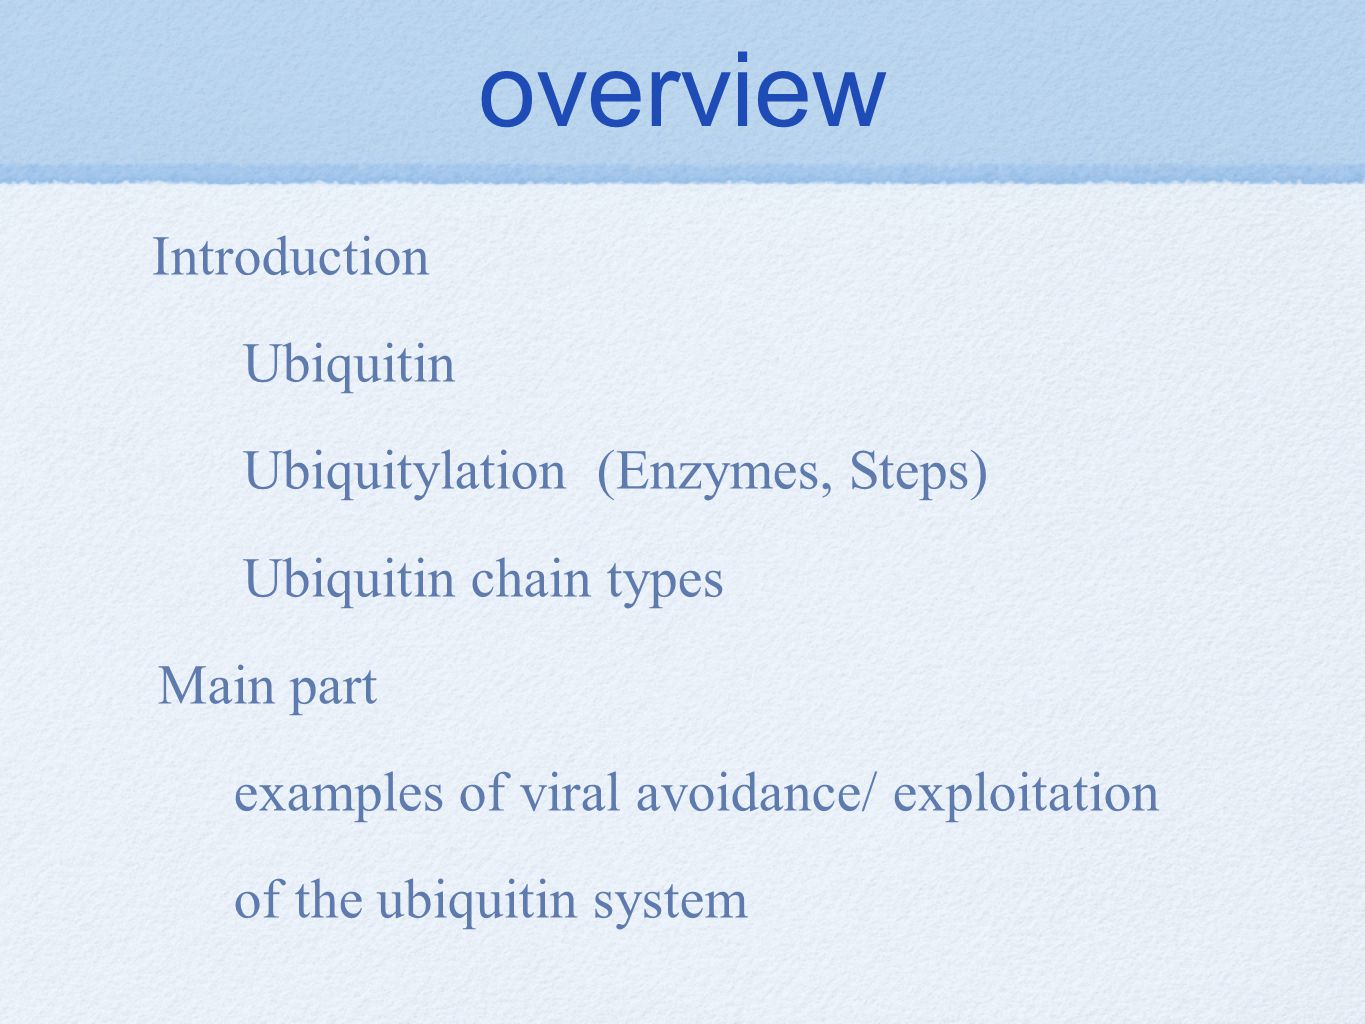 overview Introduction Ubiquitin Ubiquitylation (Enzymes, Steps) Ubiquitin chain types Main part examples of viral avoidance/ exploitation of the ubiquitin system